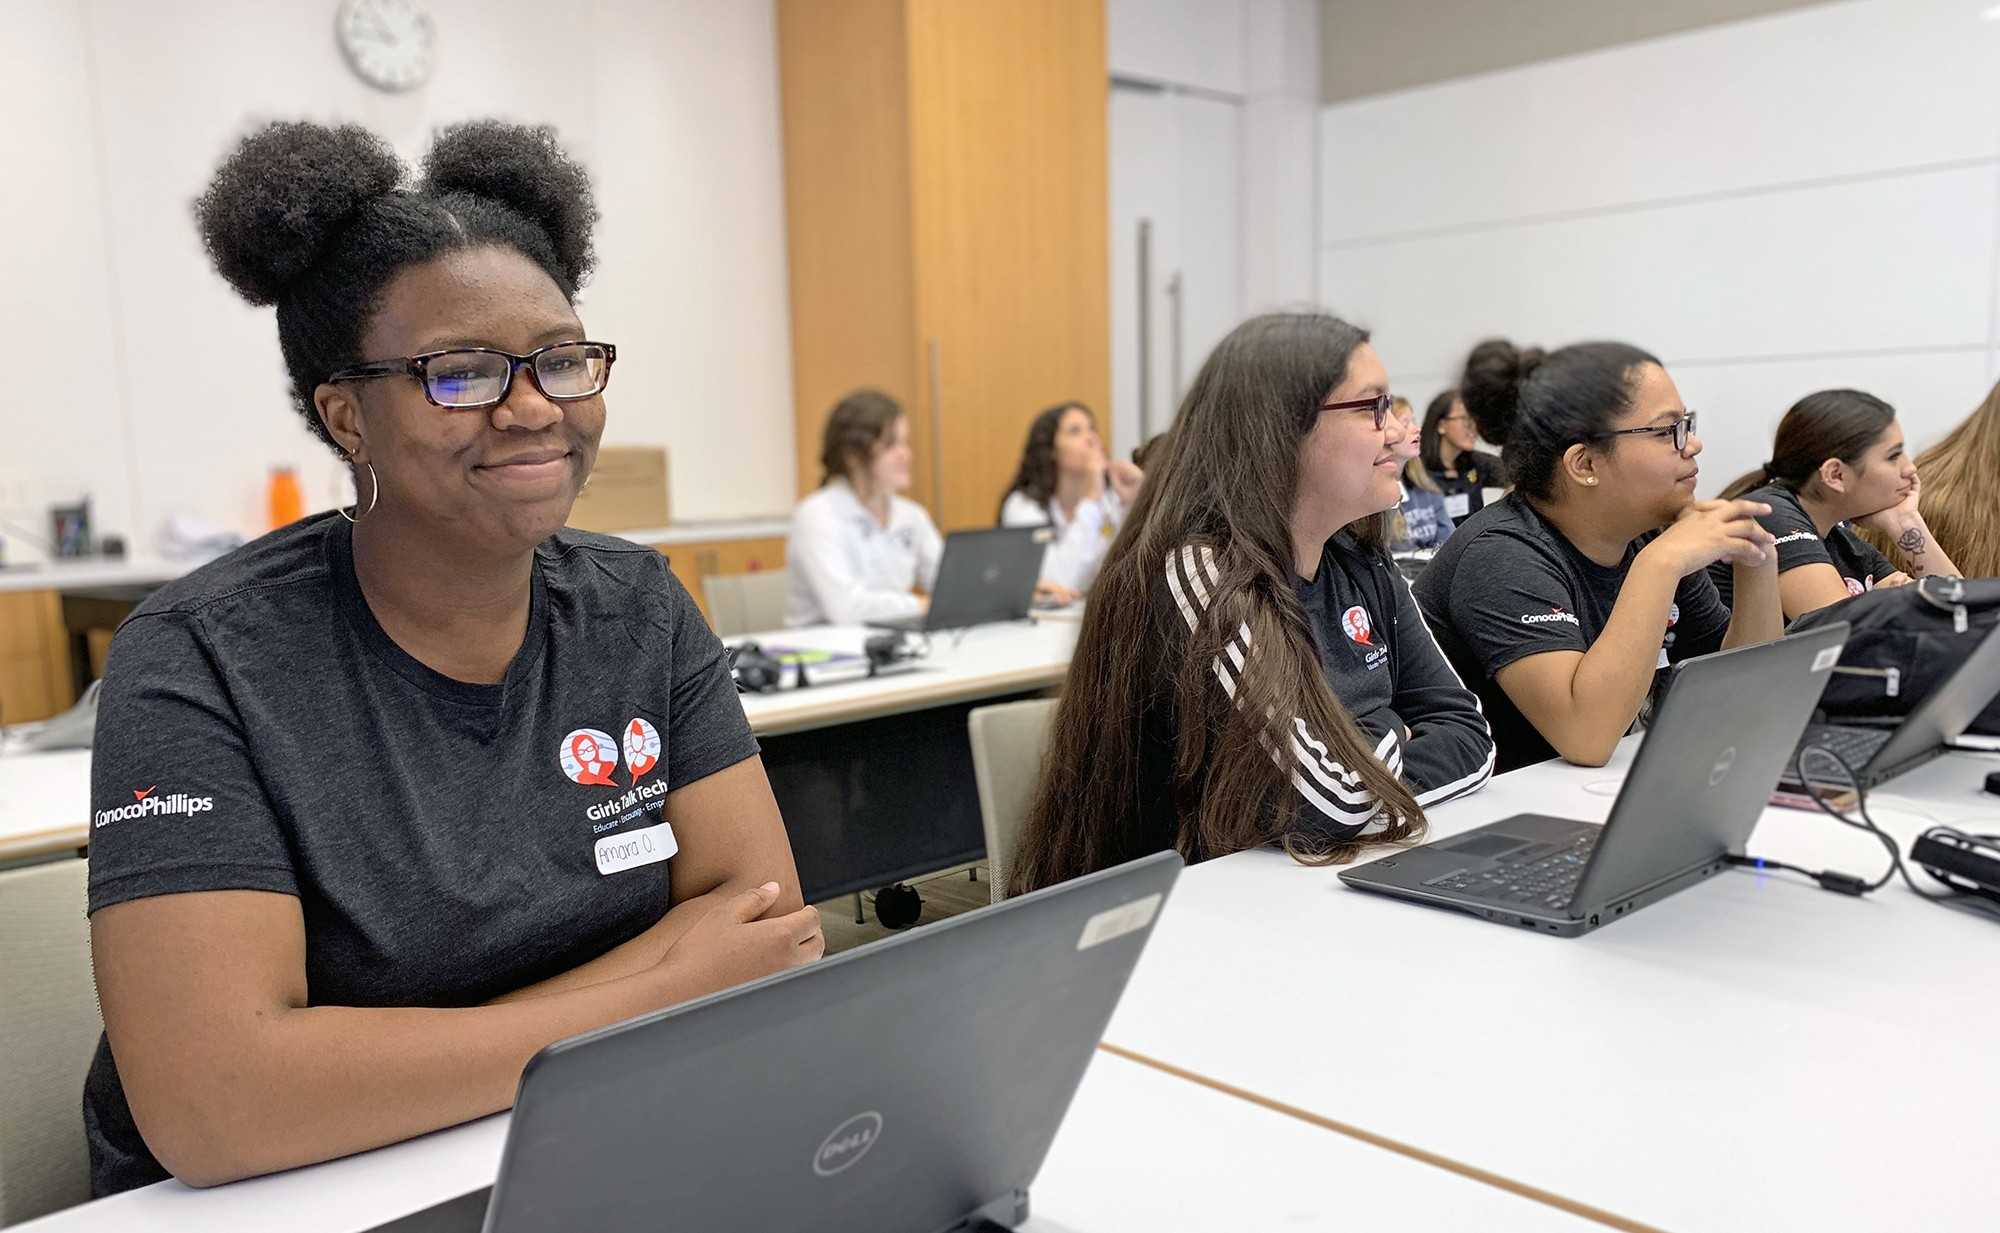 smiling student in foreground with laptop